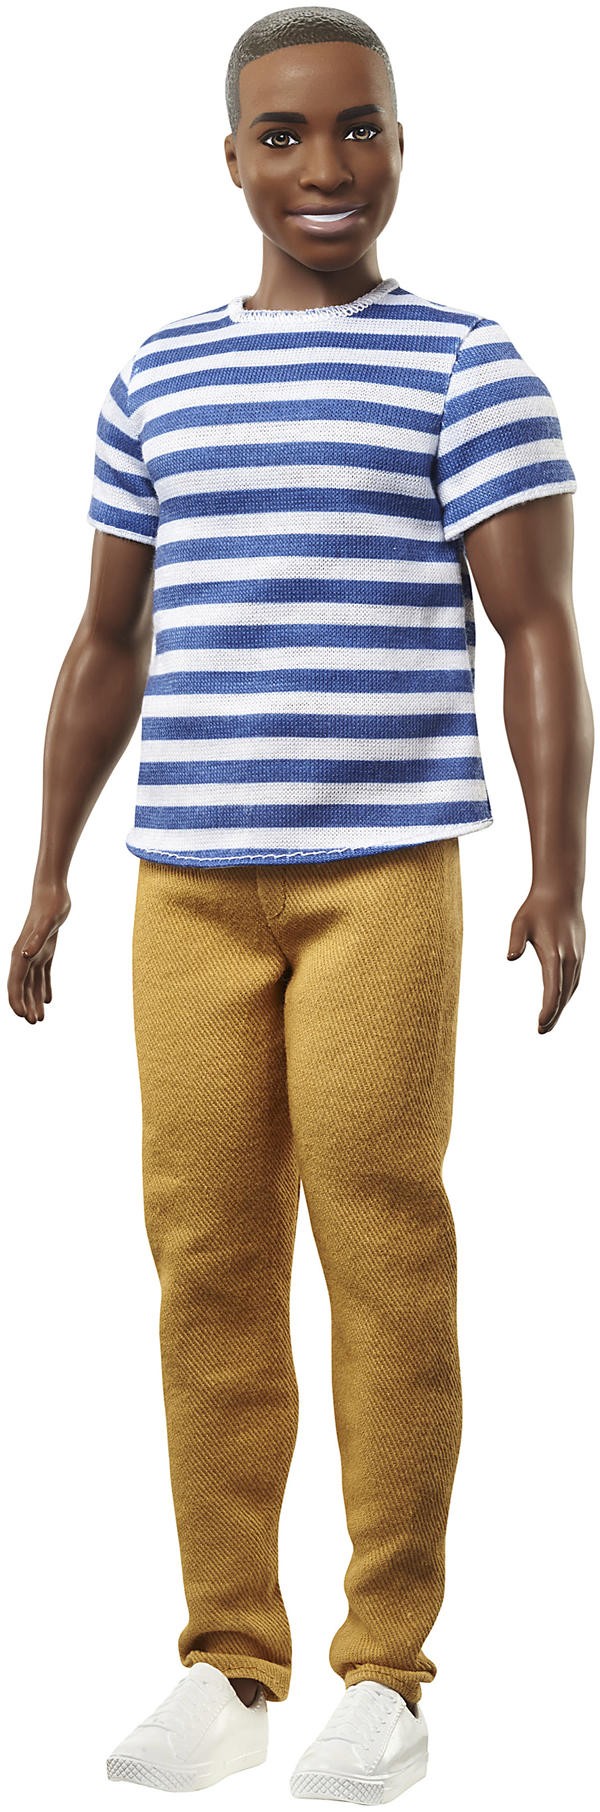 "The ""broad""-bodied Ken is part of a new line of the dolls Mattel rolled out Tuesday. The updated Ken dolls will have a variety of skin tones, body shapes and hair styles."